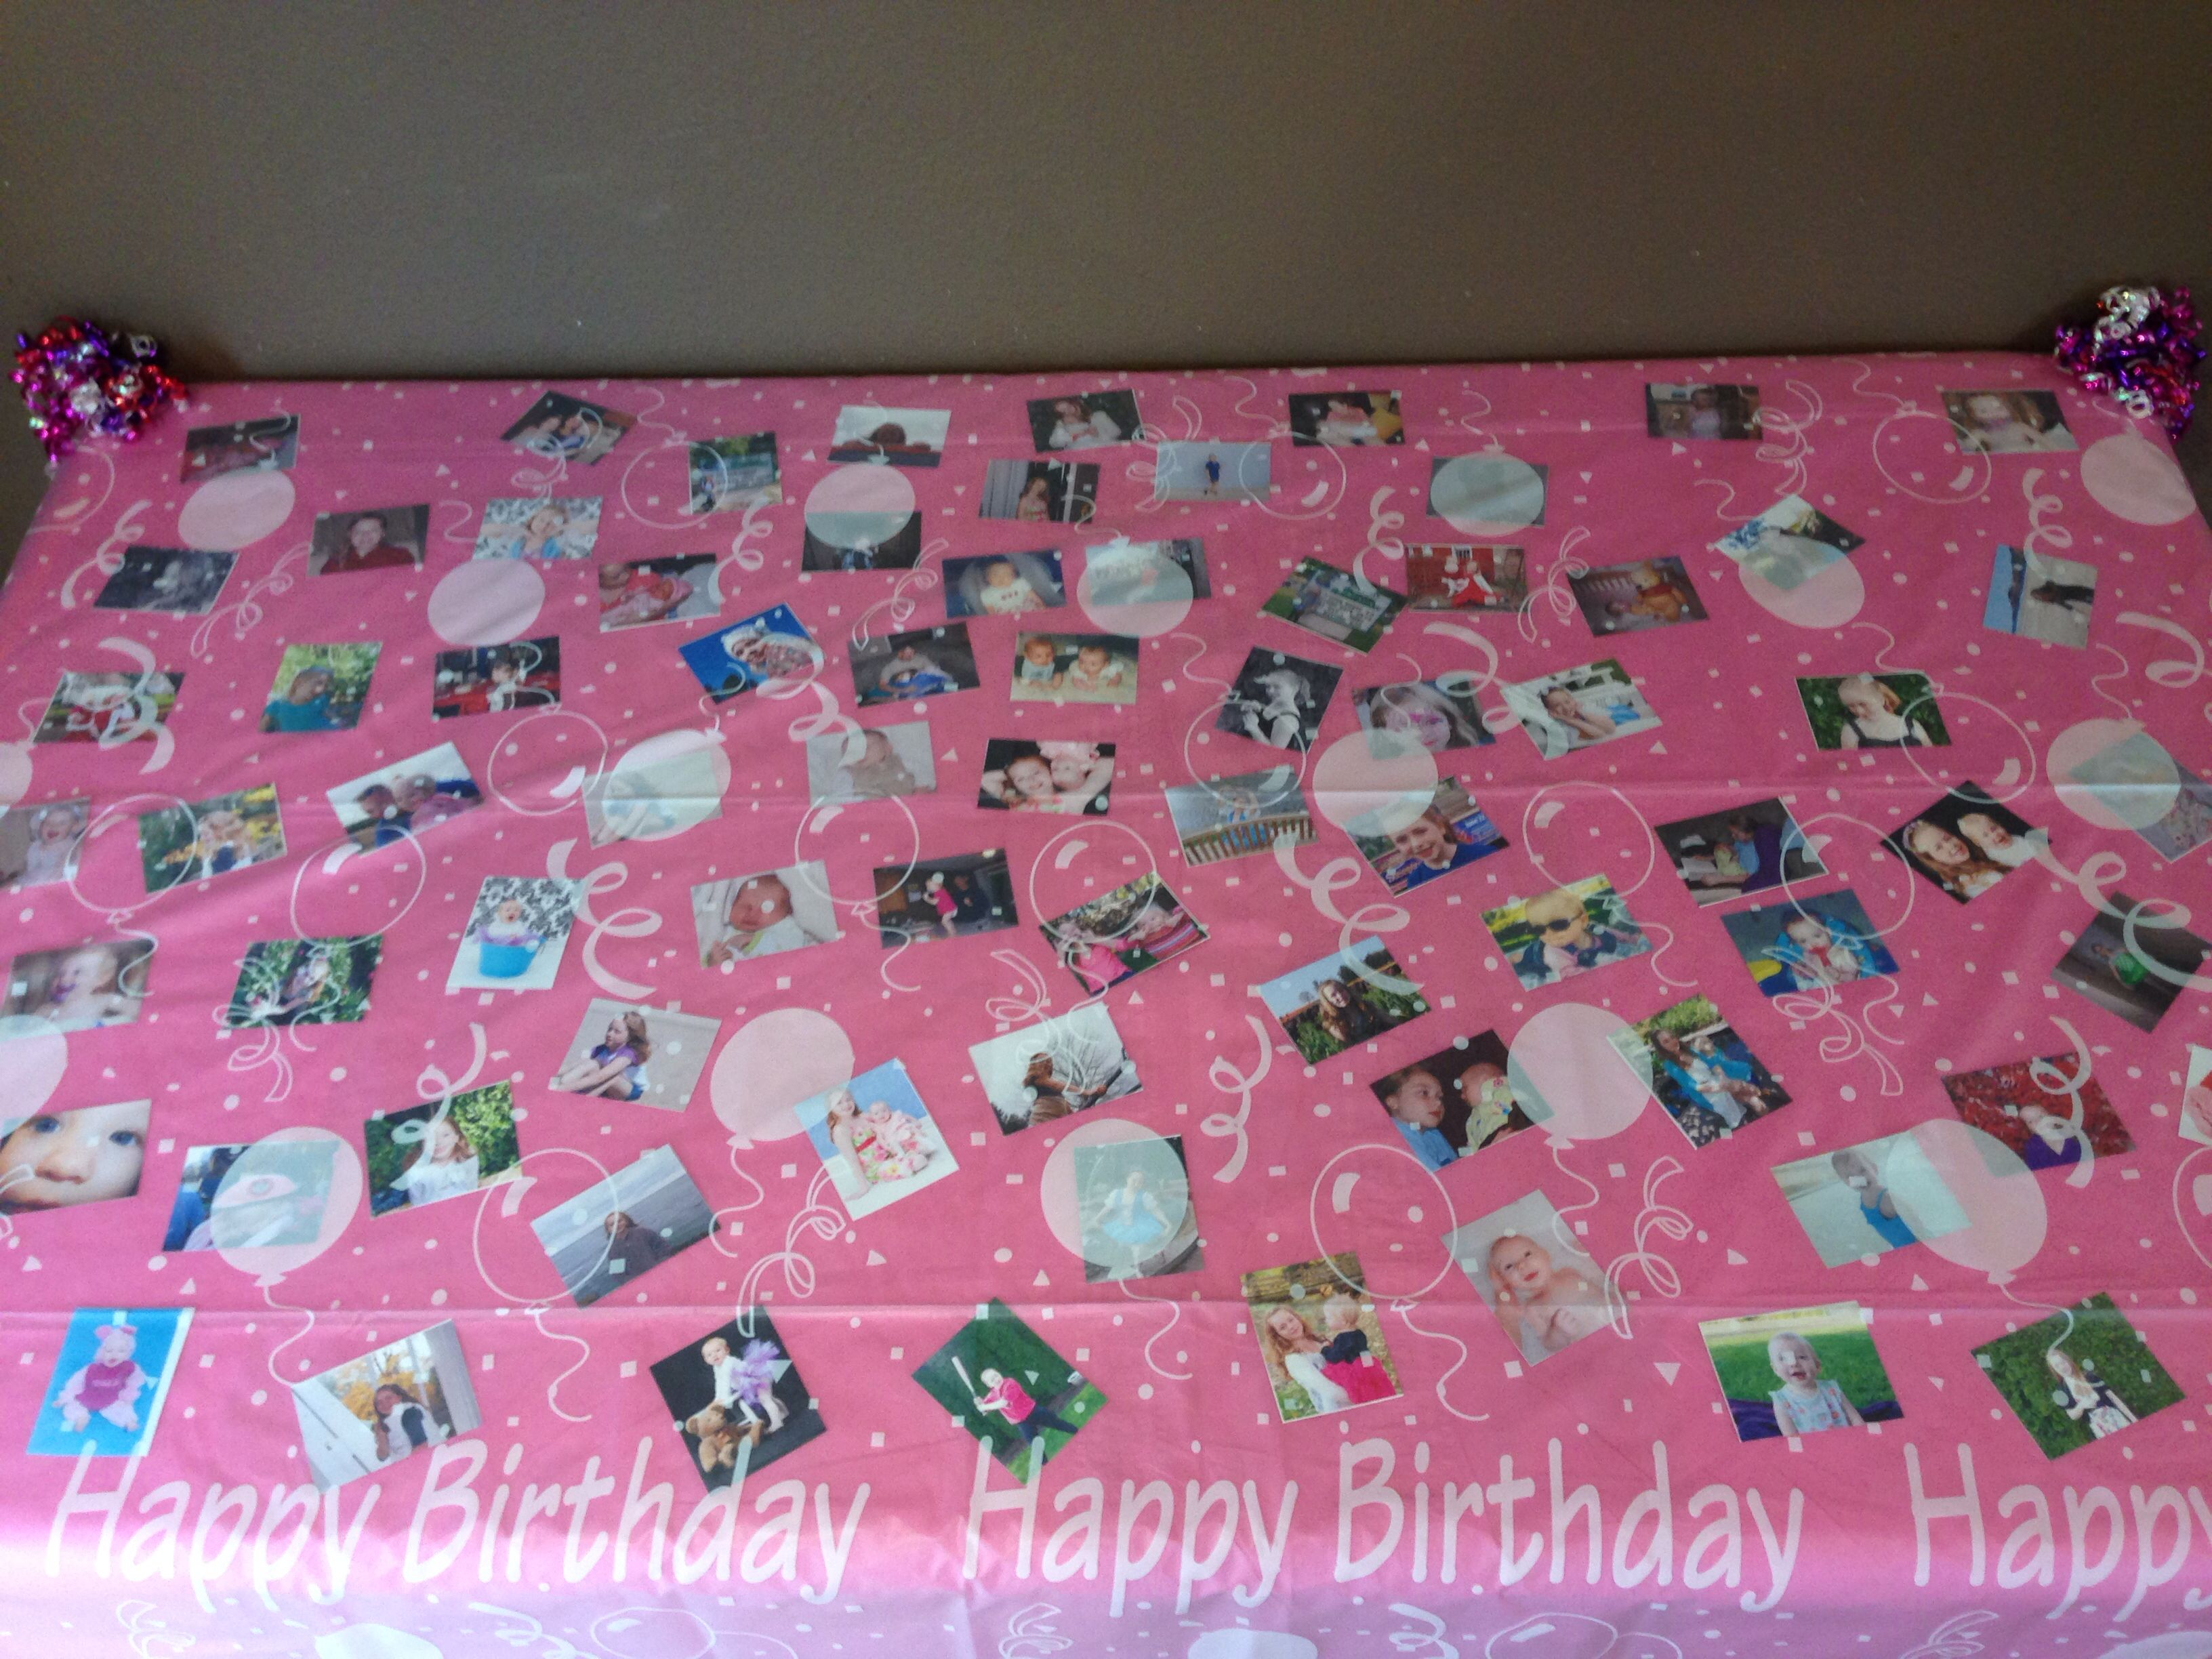 Solid Color Table Cloth With Tons Of Pictures, Then A Clear Plastic Table  Cloth On